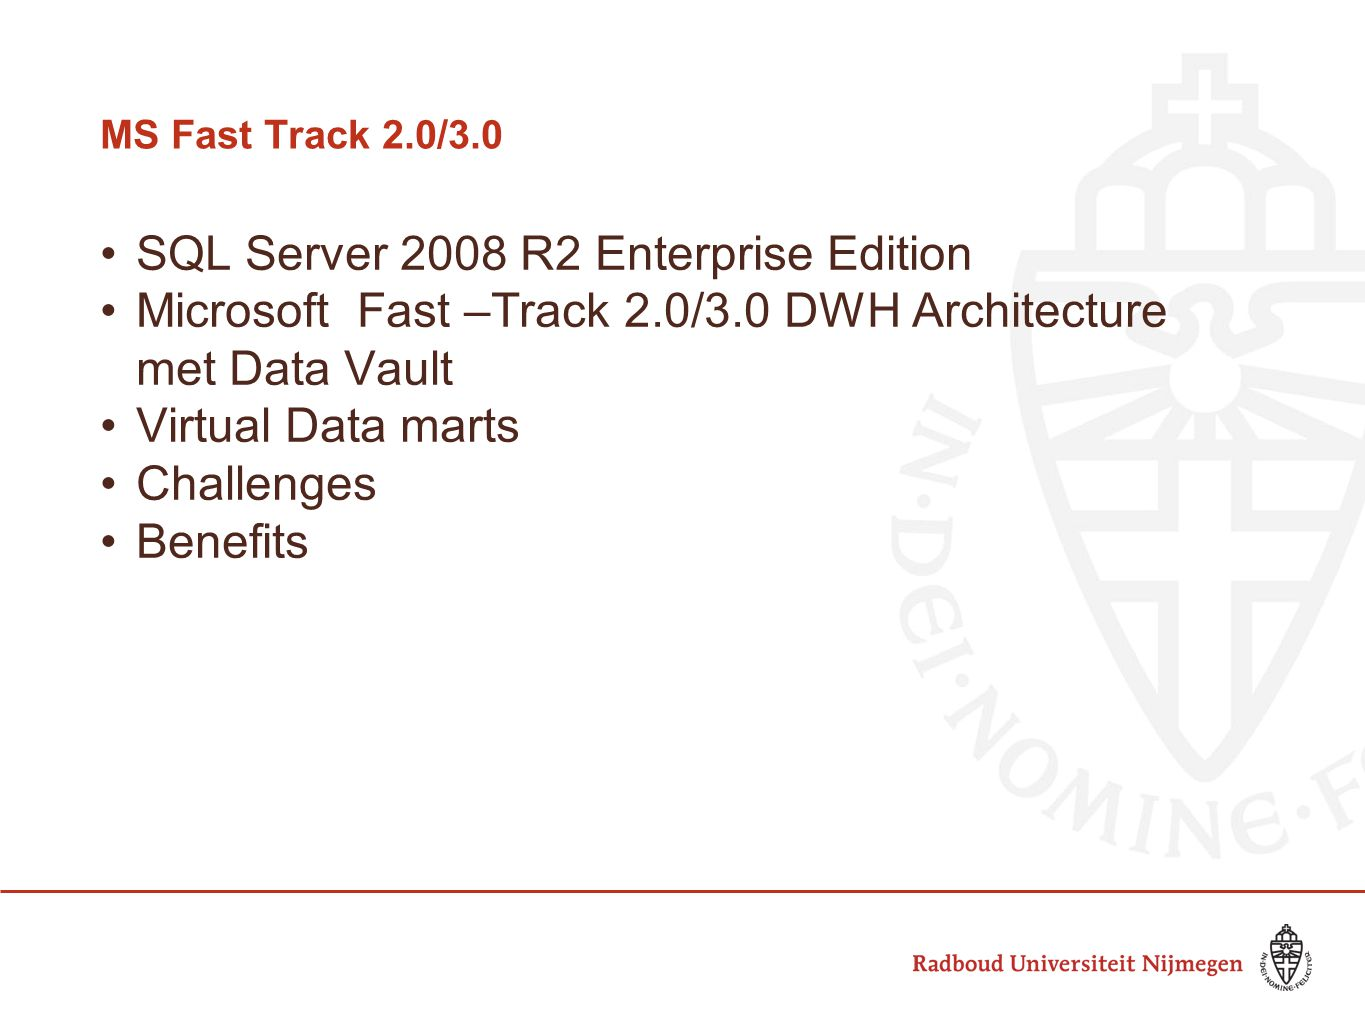 SQL Server 2008 R2 Enterprise Edition